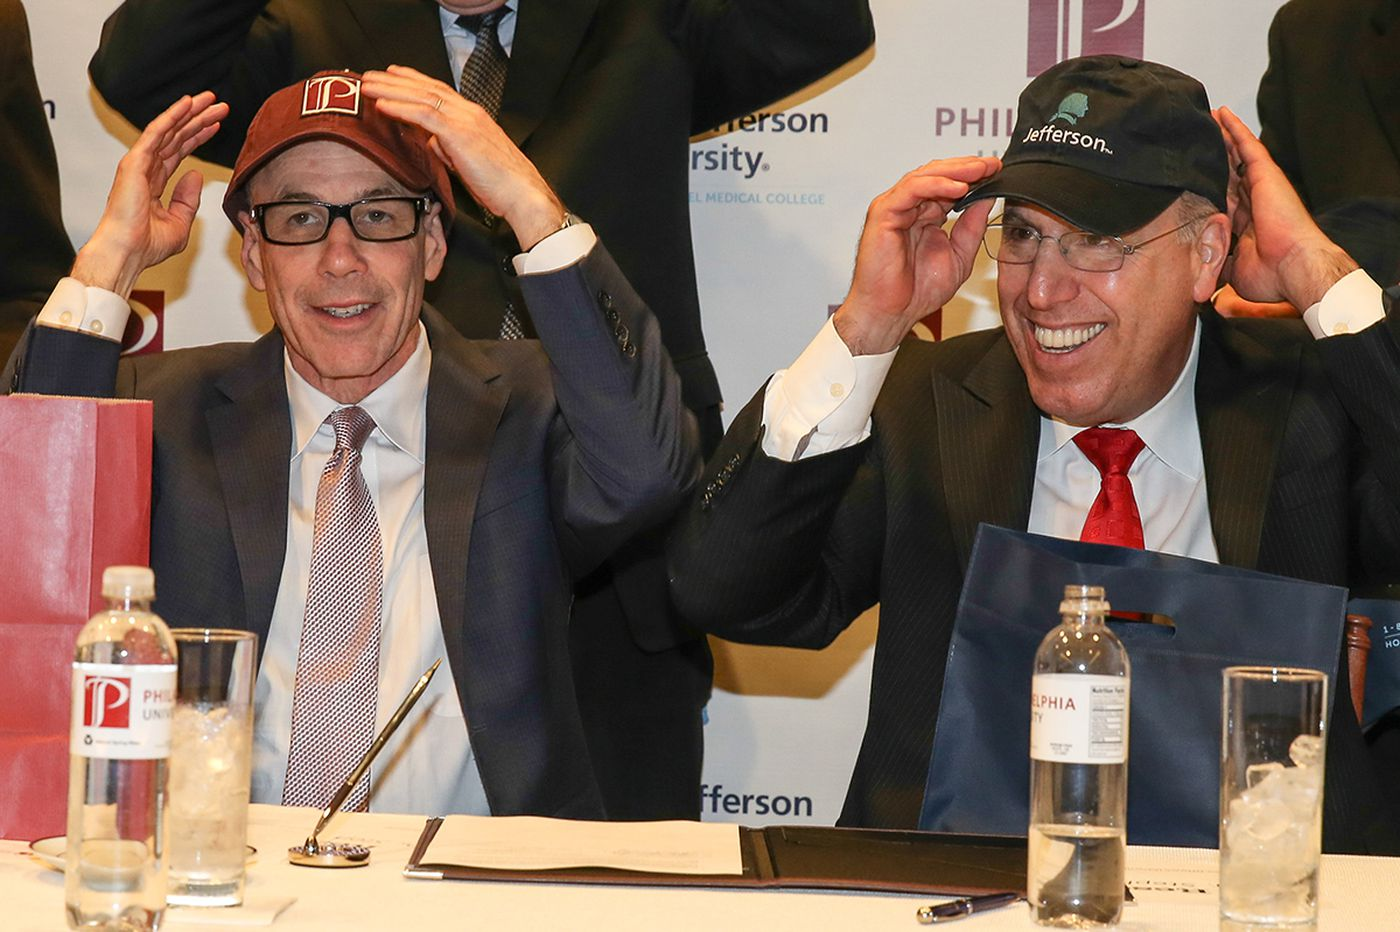 Jefferson, Philadelphia University to merge